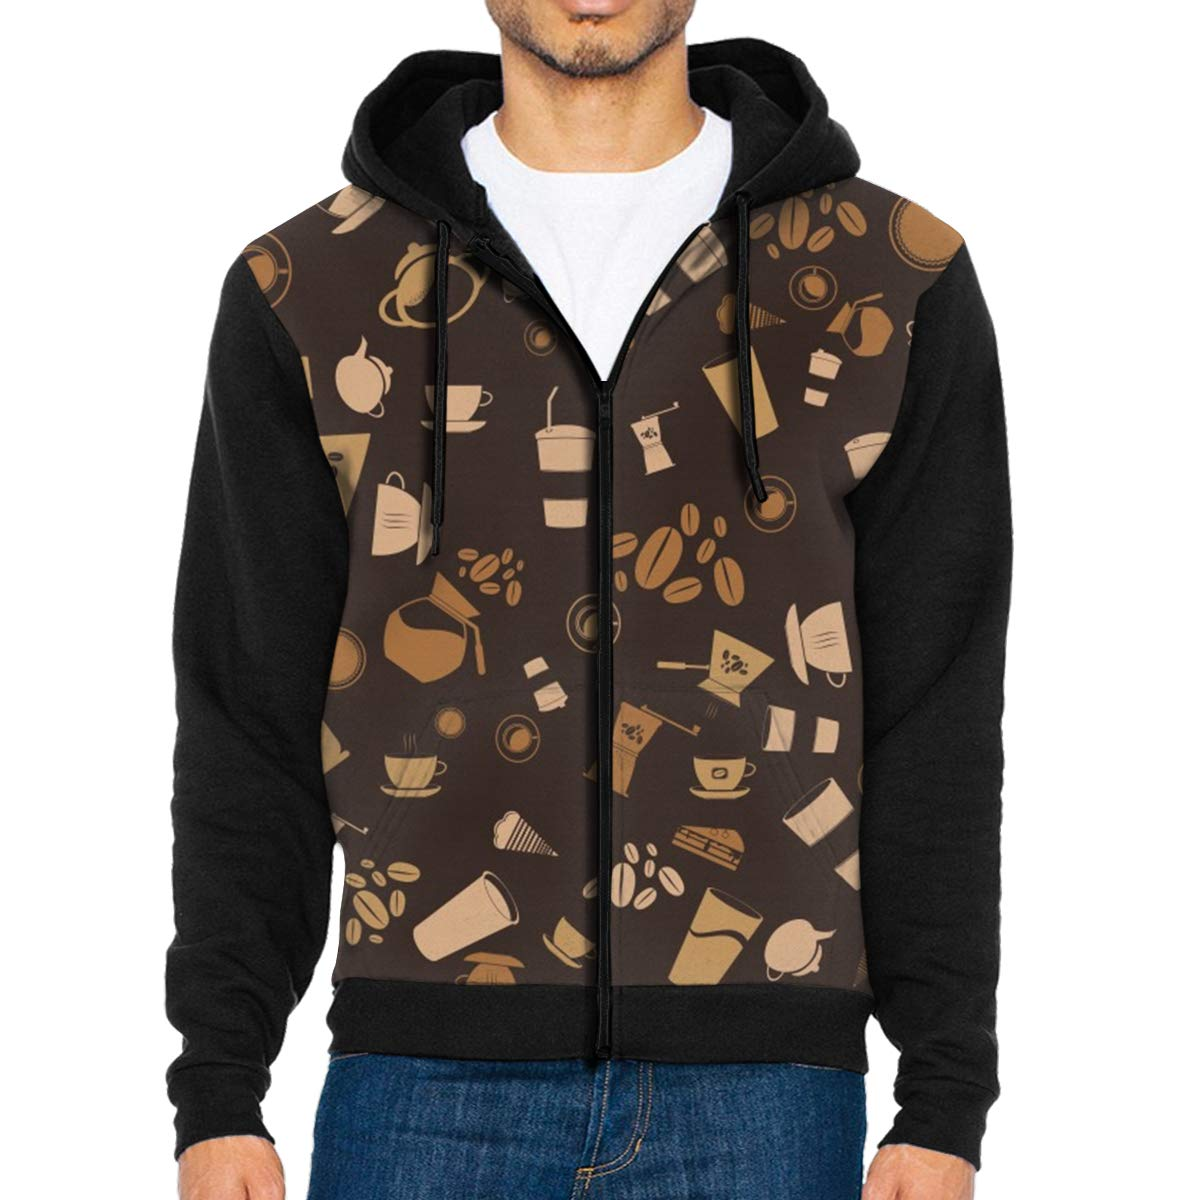 Coffee Elements Pattern Lightweight Mans Jacket with Hood Long Sleeved Zippered Outwear